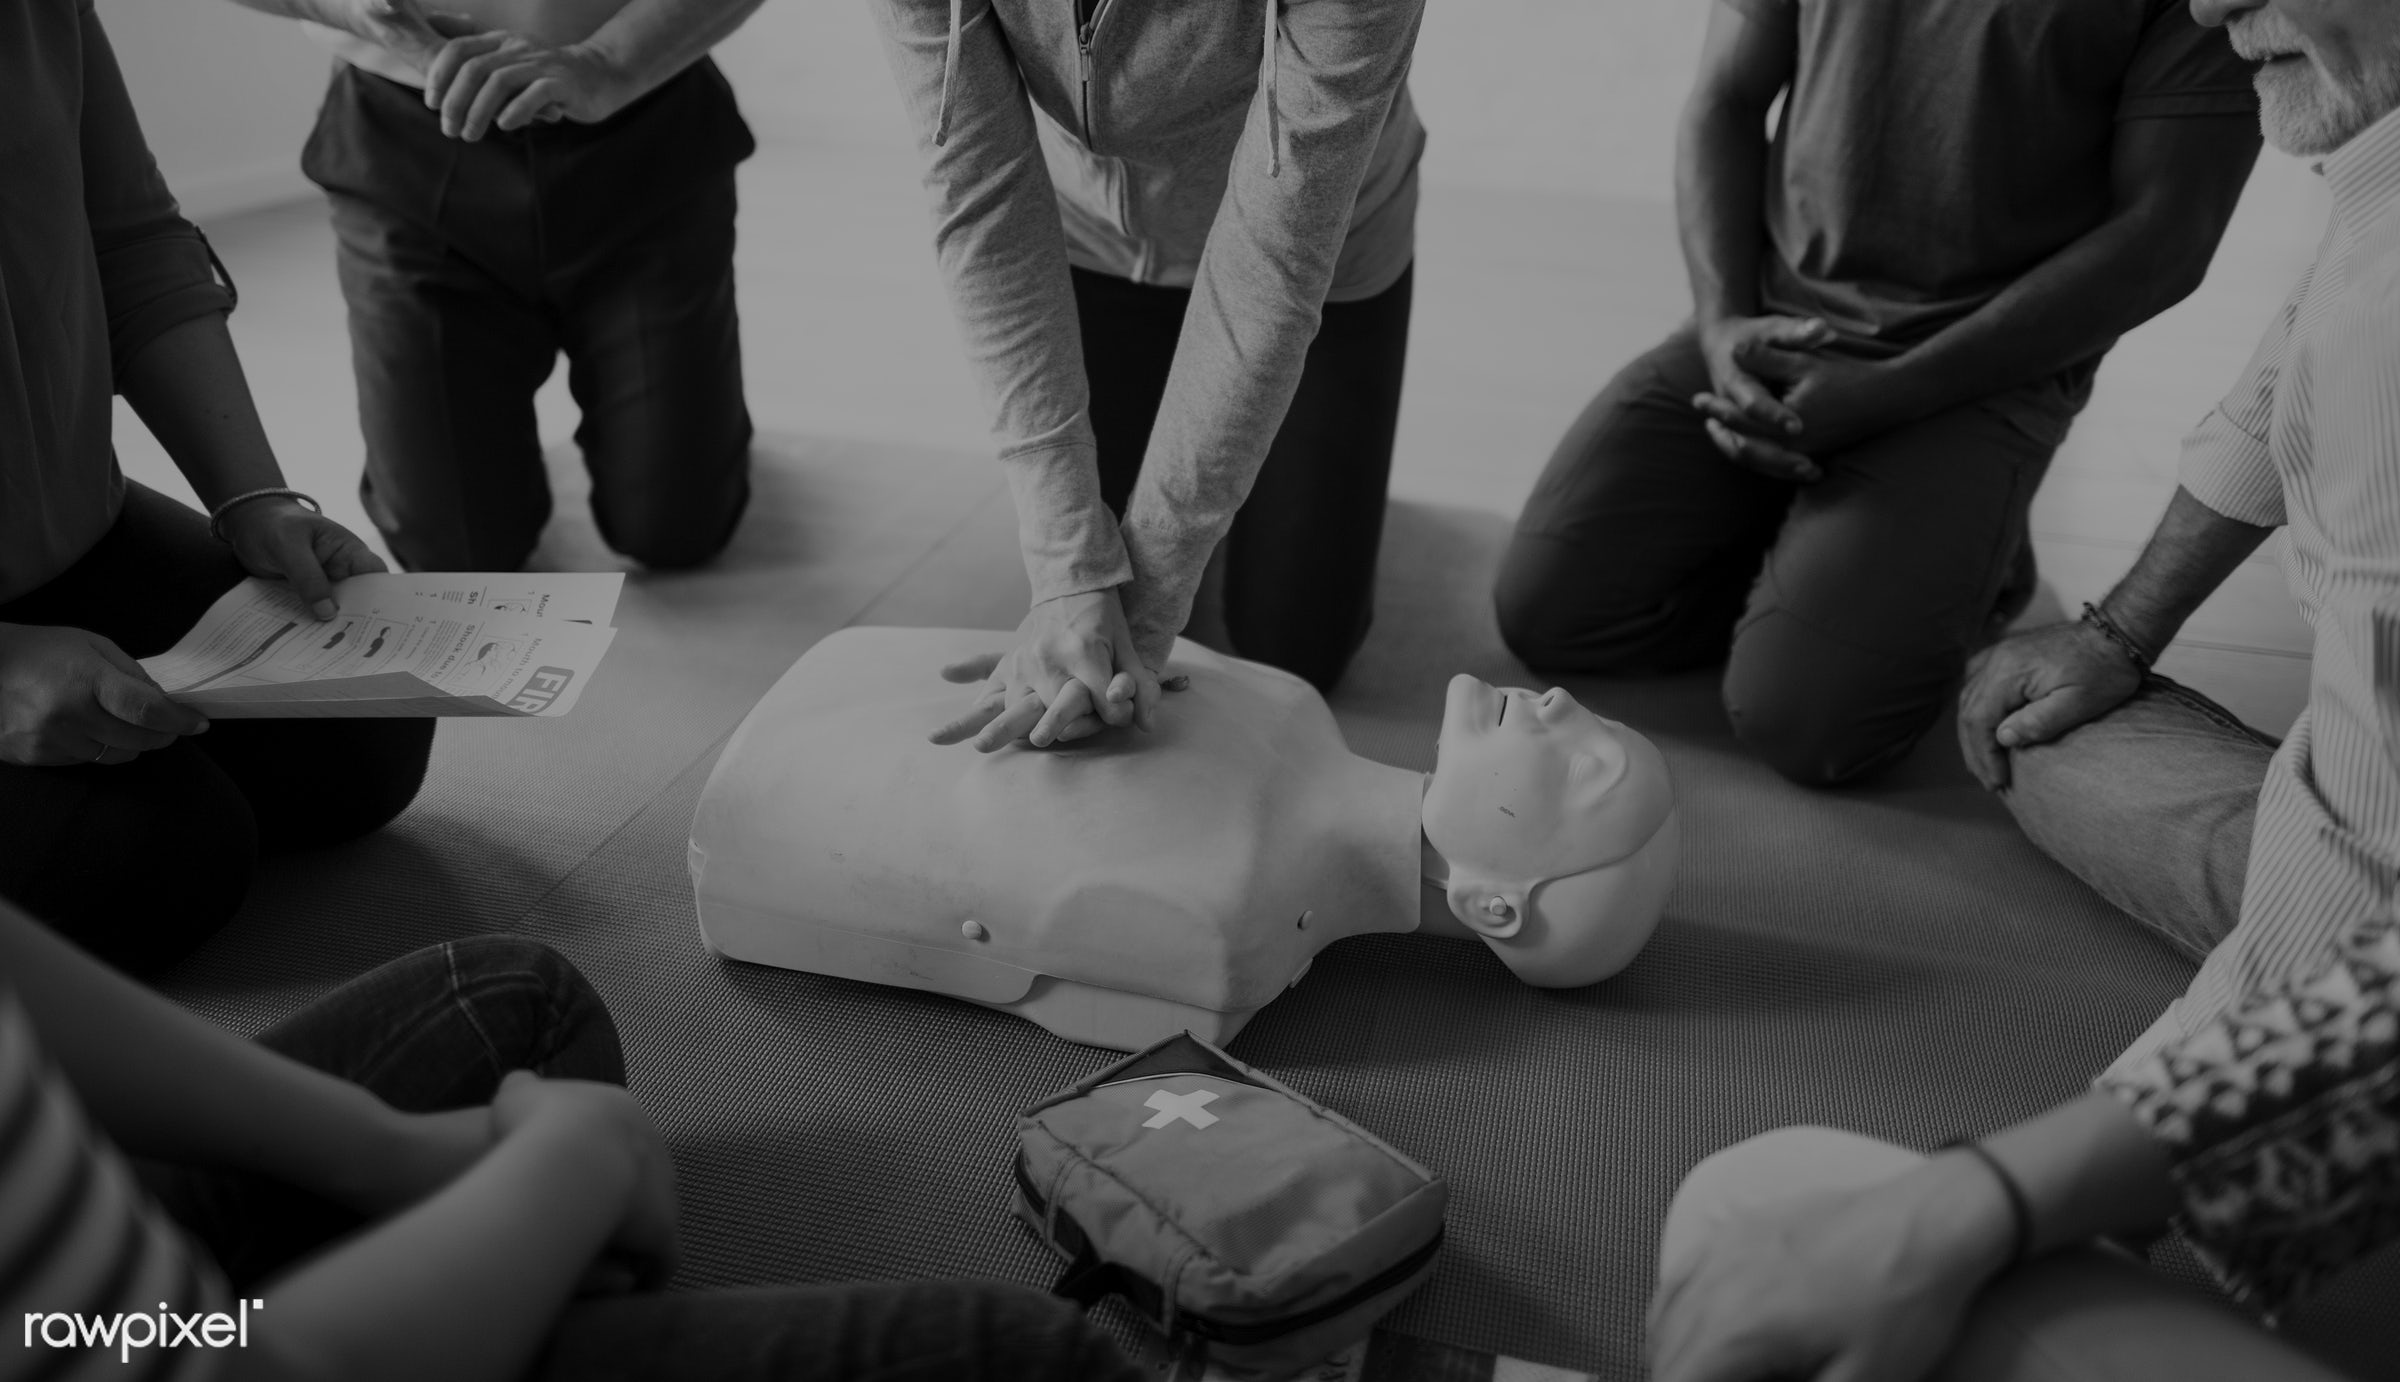 cpr training, person, knowledge, save, first aid, black and white, resuscitation, treatment, emergency, indoors, aid, people...